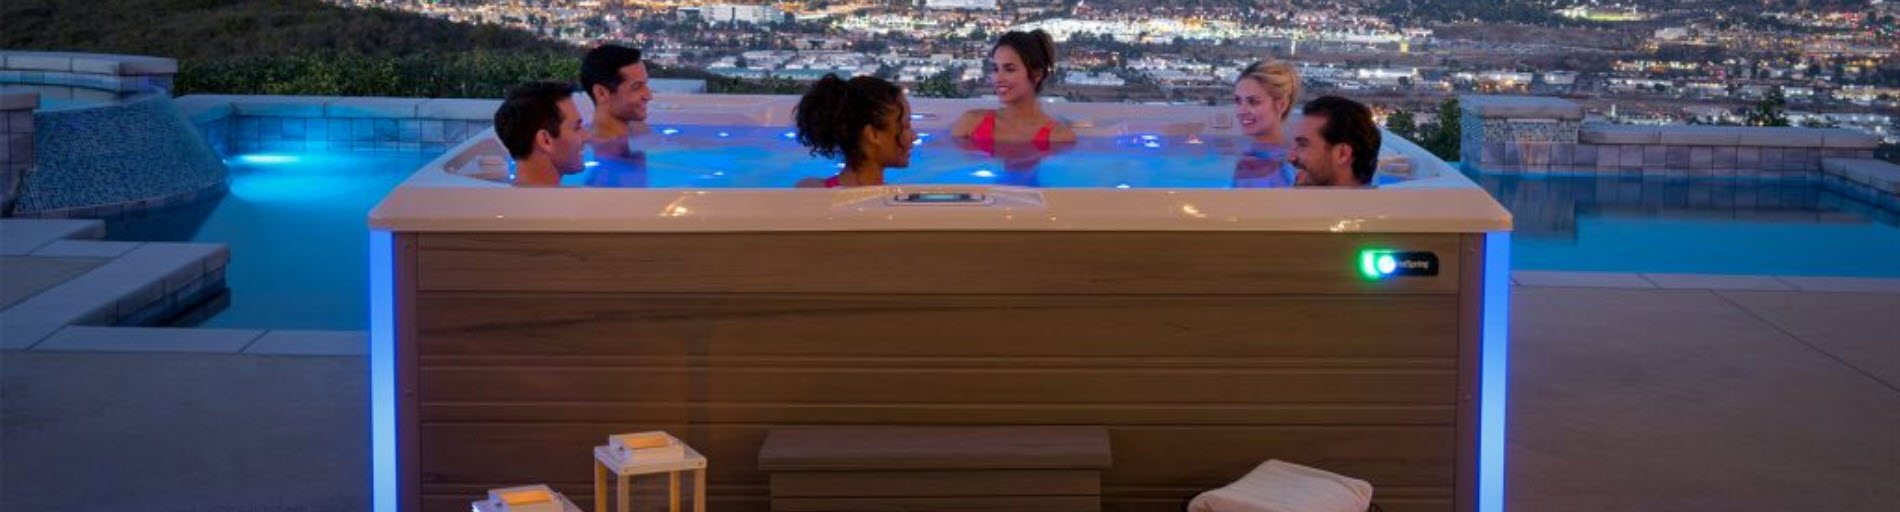 Use Hot Tub Hydrotherapy to Feel Fantastic, Hot Tubs Big Timber